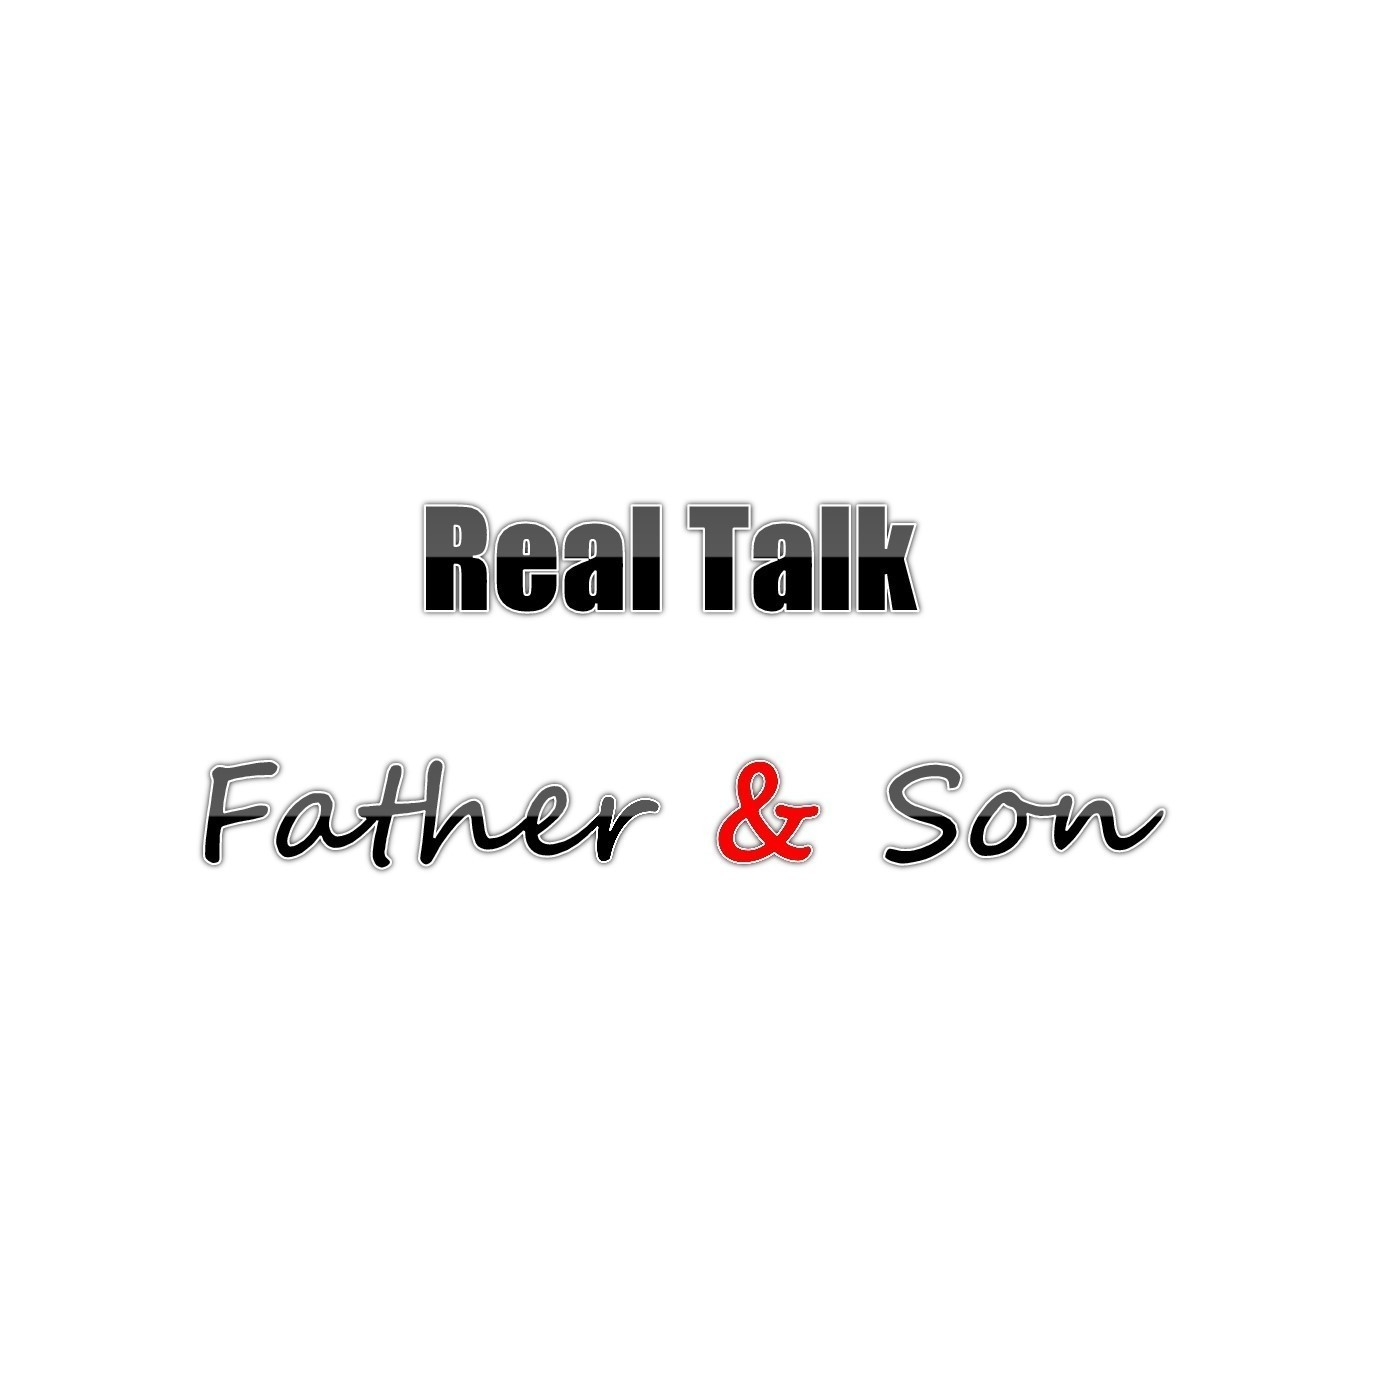 <![CDATA[Real Talk Father & Son]]>